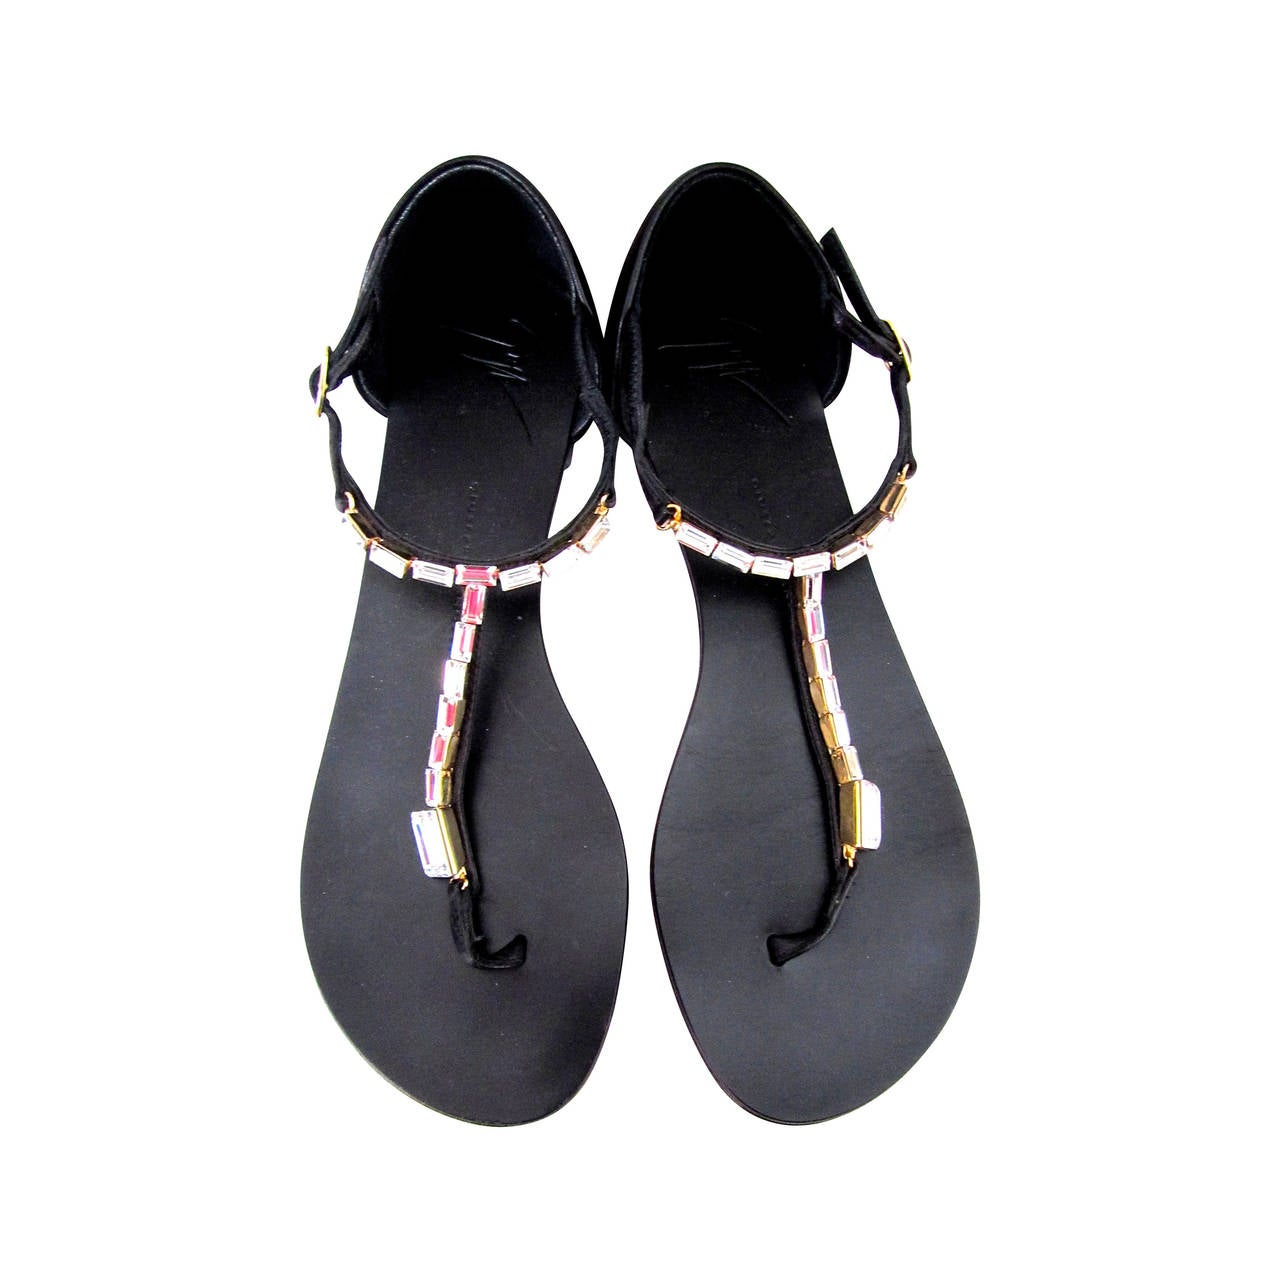 Giuseppe Zanotti Strap Sandals - Size 37 - Black with Rhinestones